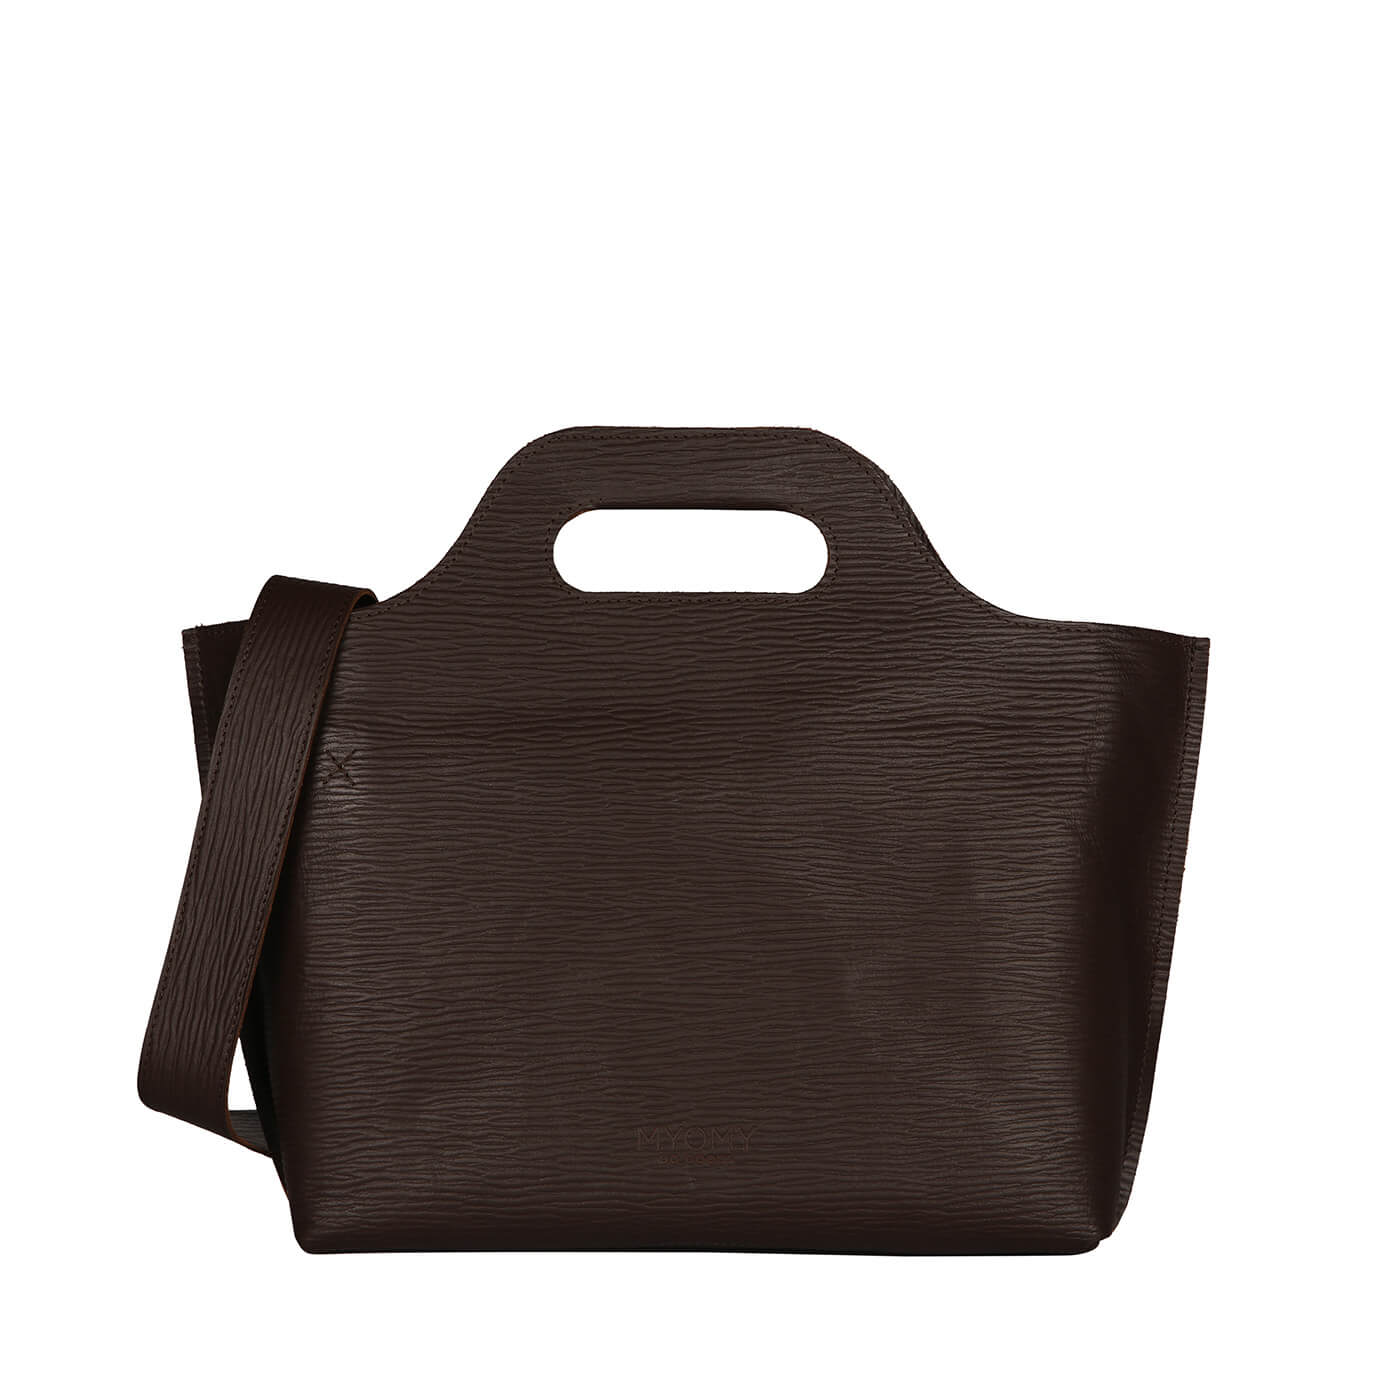 [PRE-ORDER] MY CARRY BAG Handbag – boarded dark brown